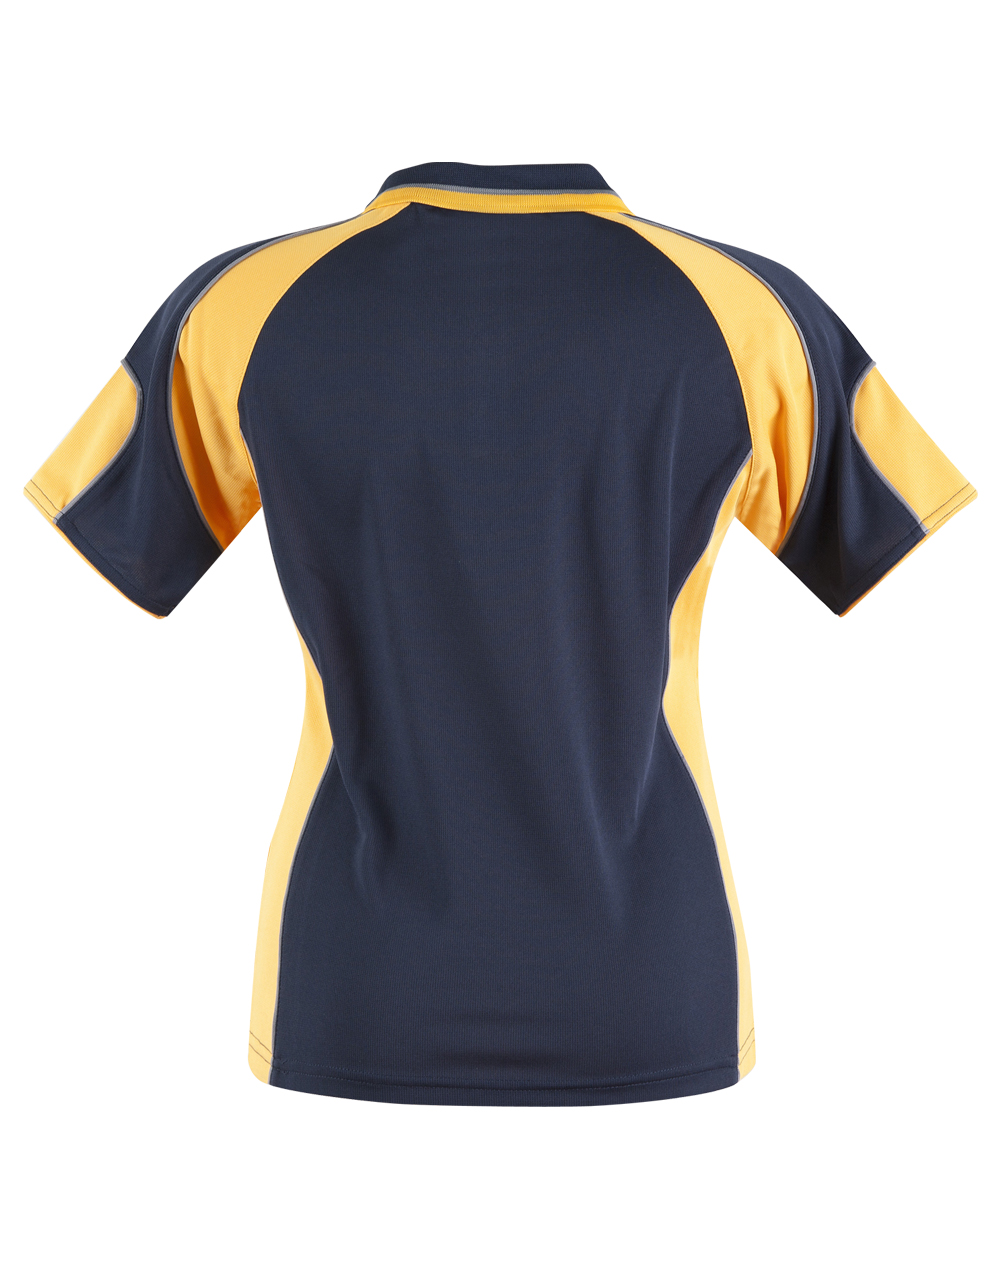 https://s3-ap-southeast-1.amazonaws.com/ws-imgs/POLOSHIRTS/PS62_NavyGold_Back.jpg